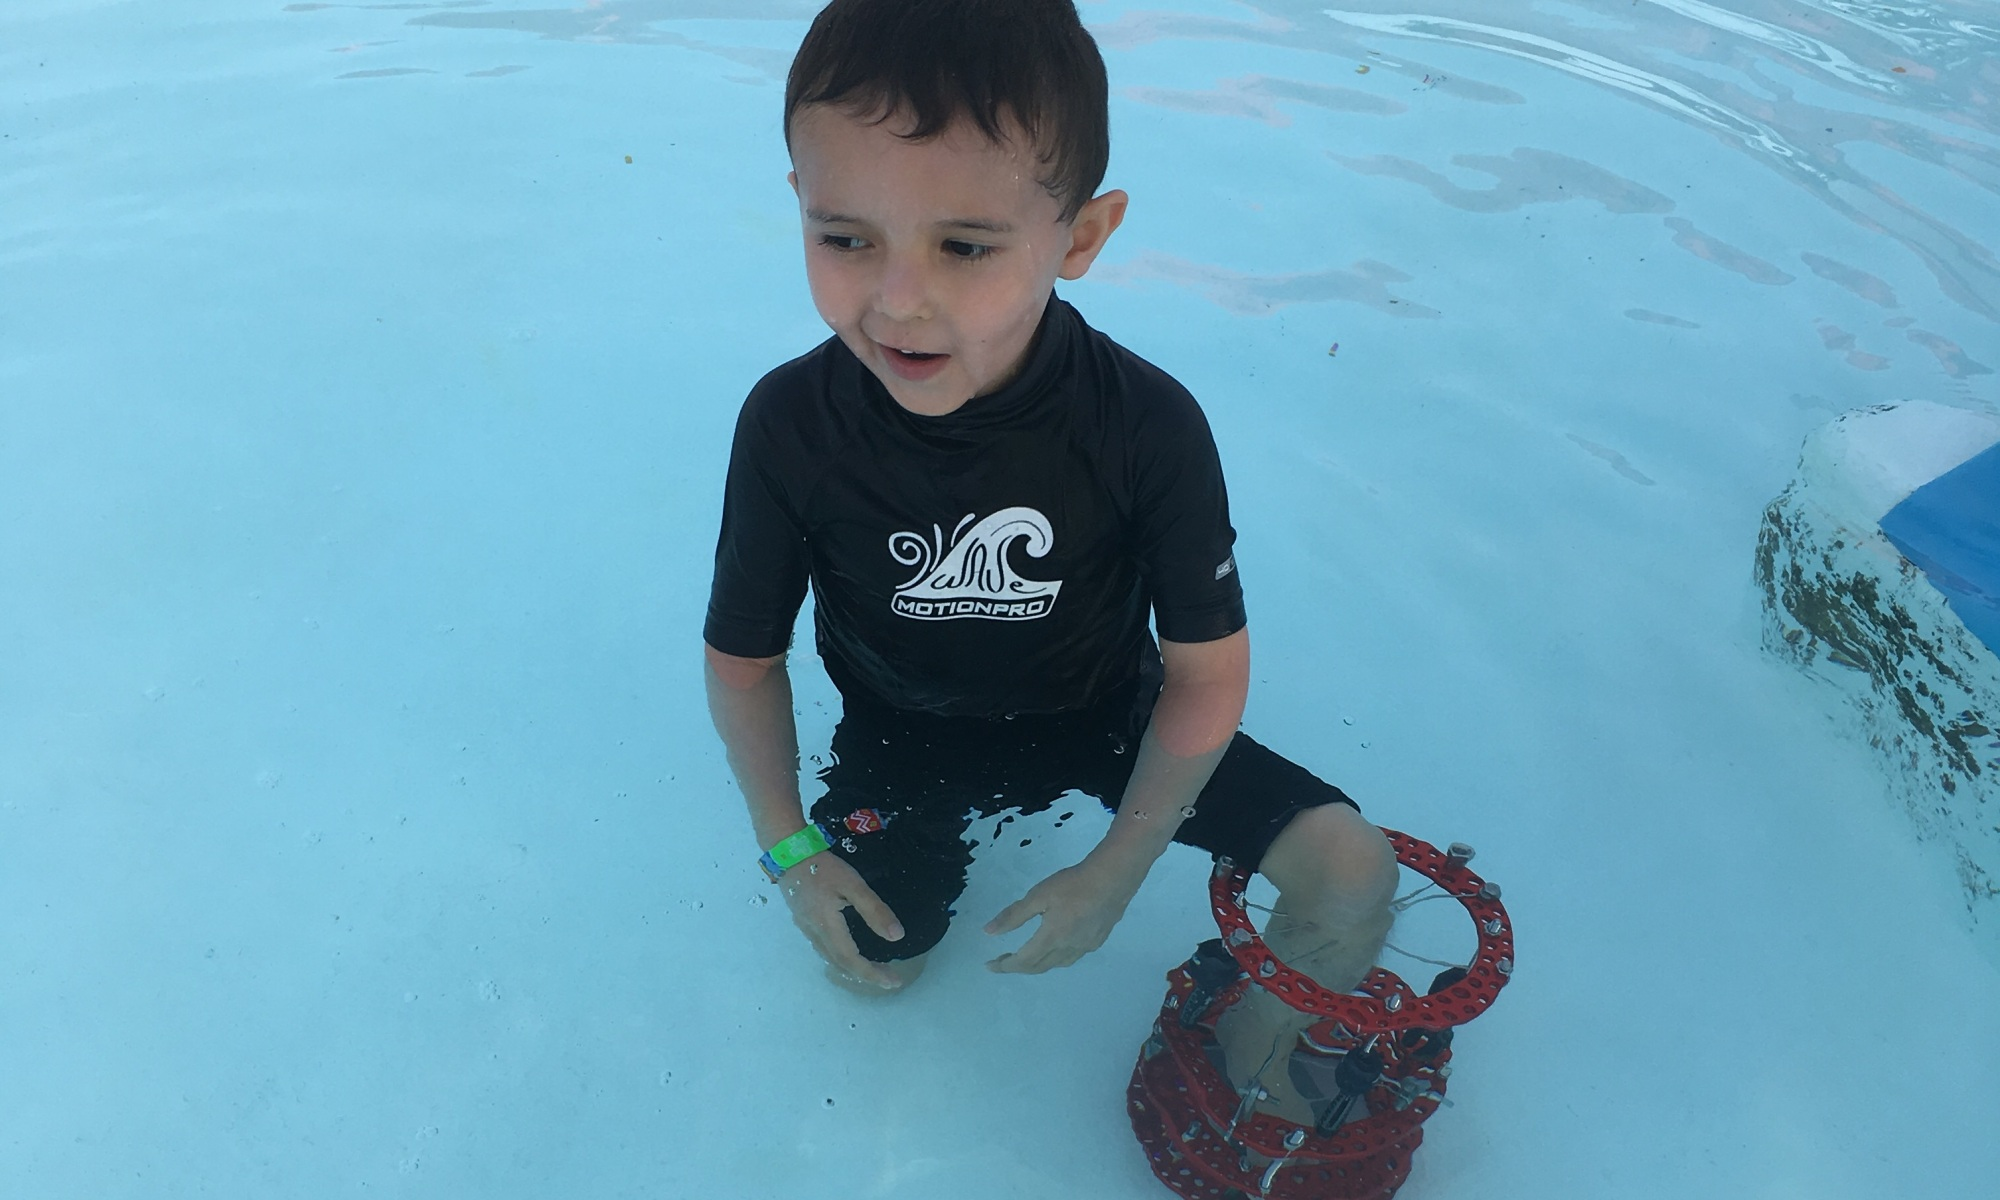 Shigue in the pool wearing his external fixator